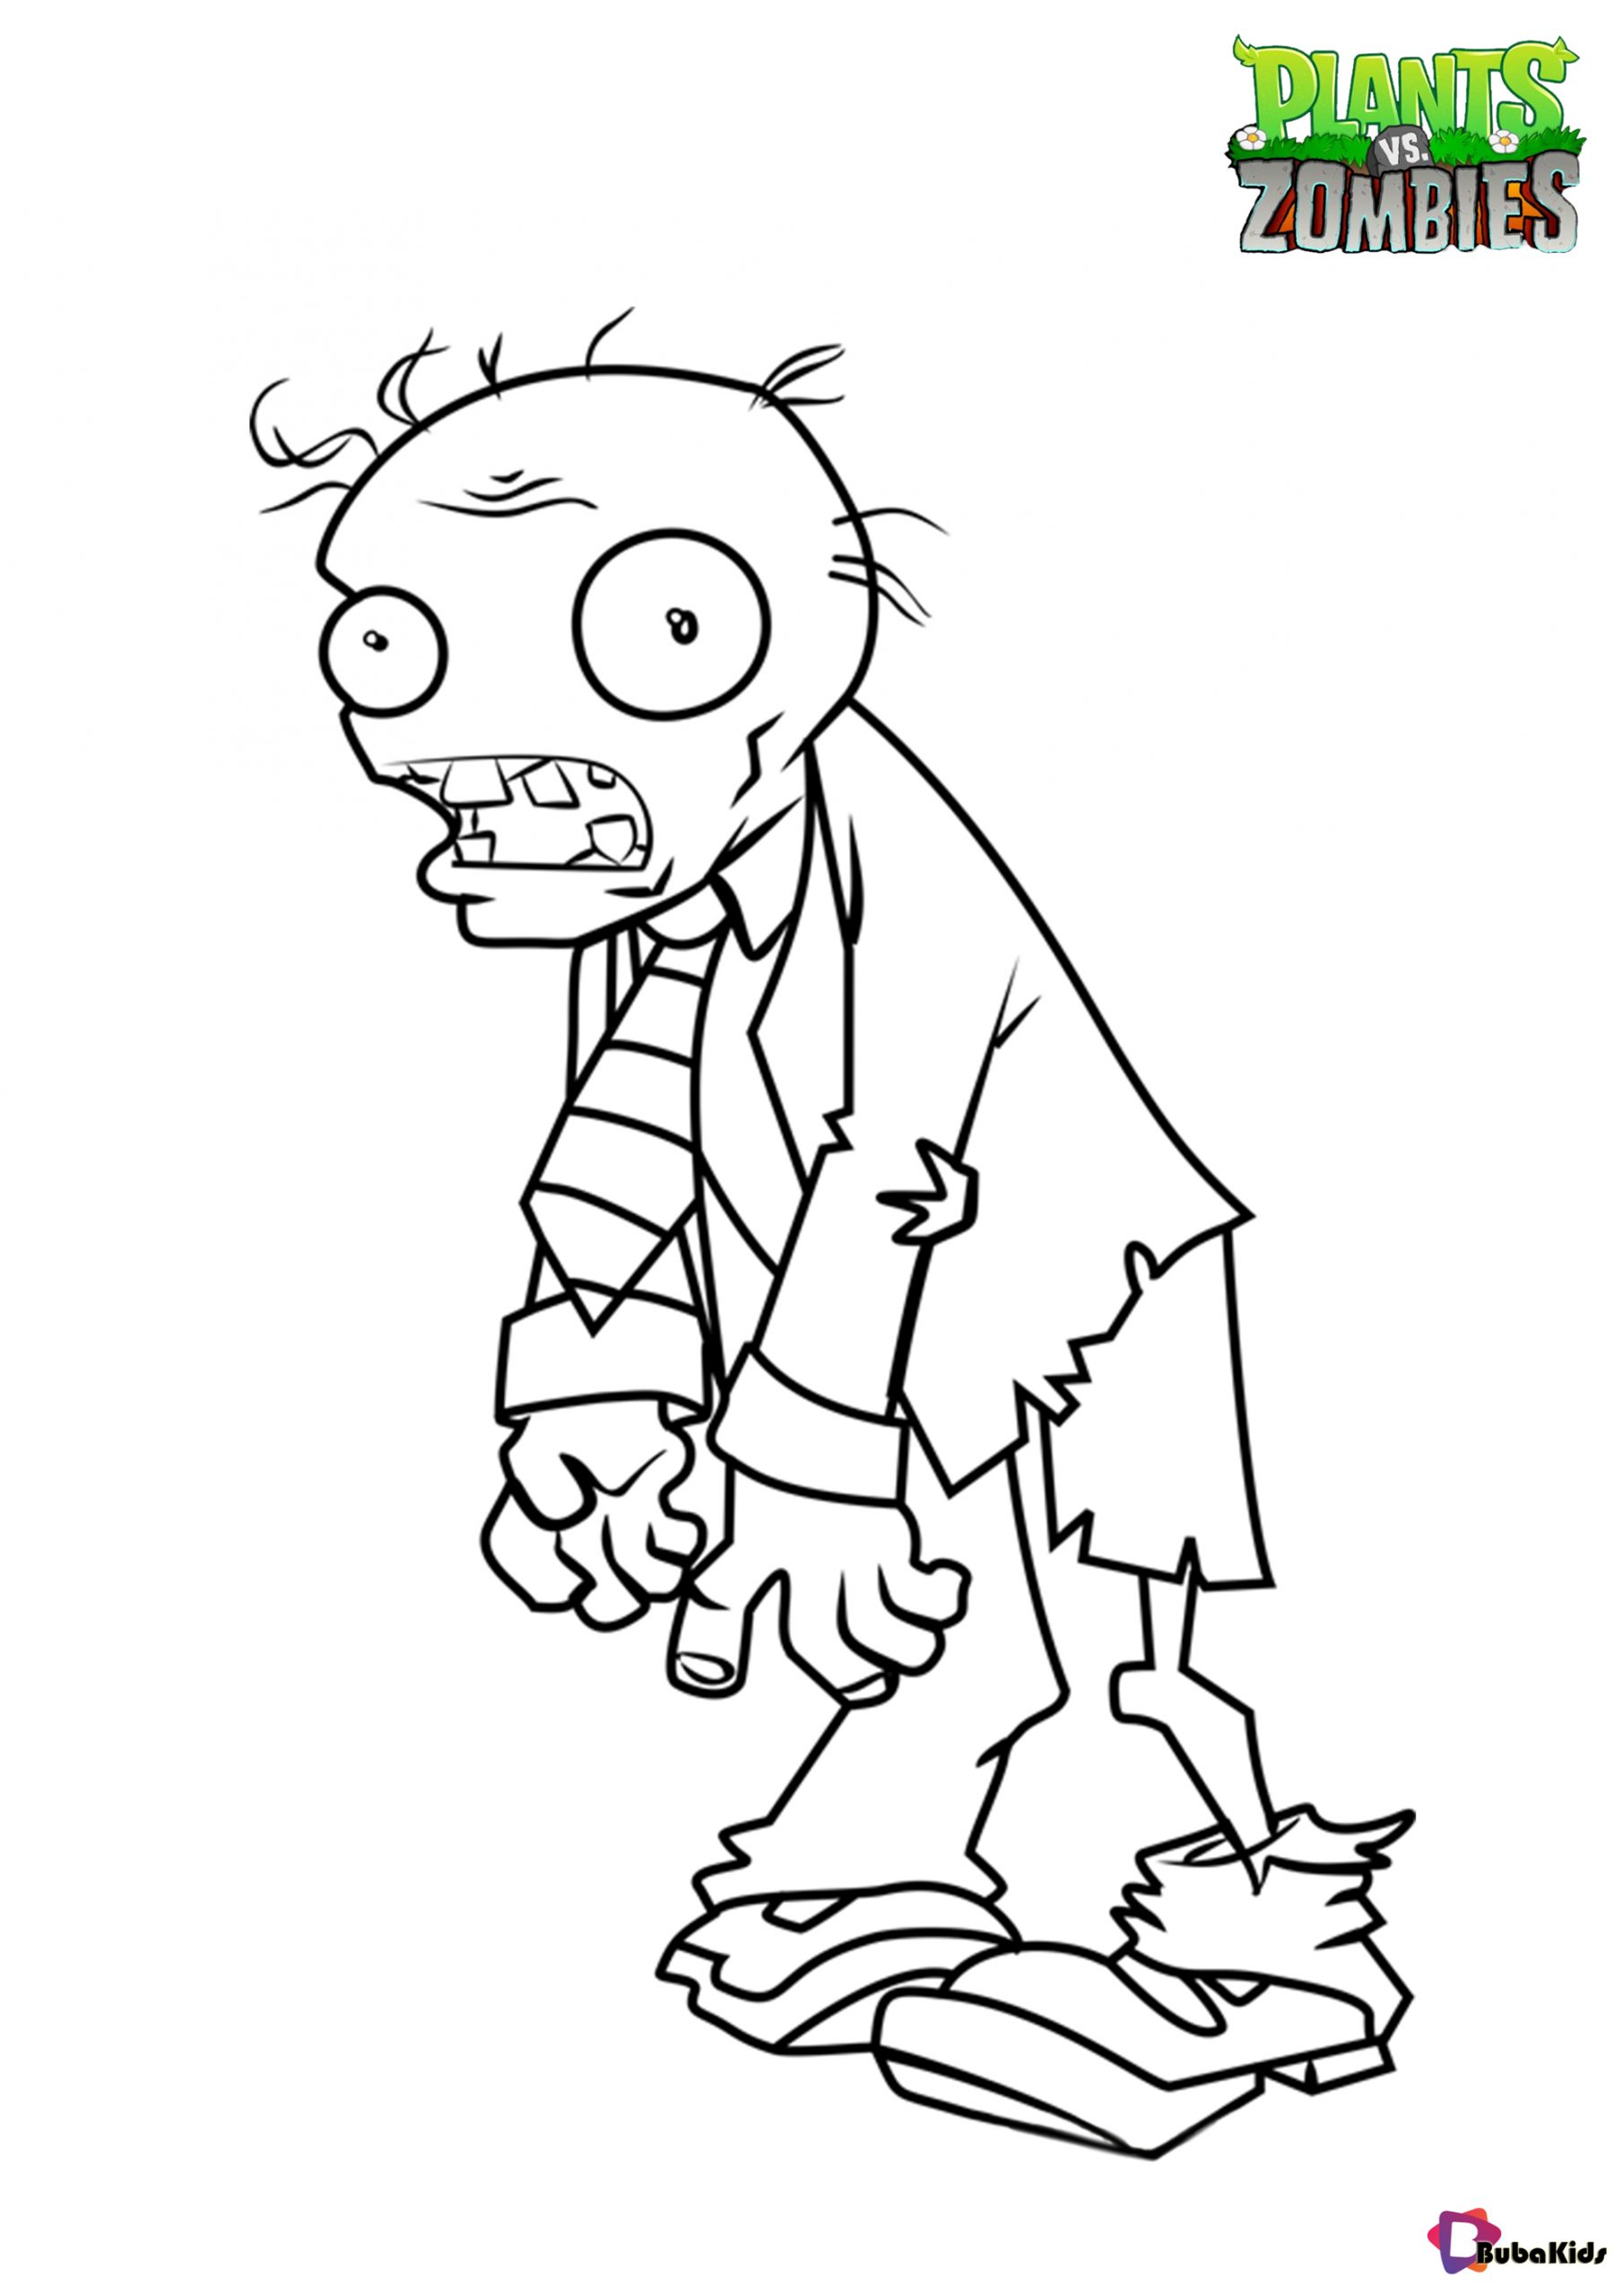 Free download plants vs Zombies coloring page Wallpaper